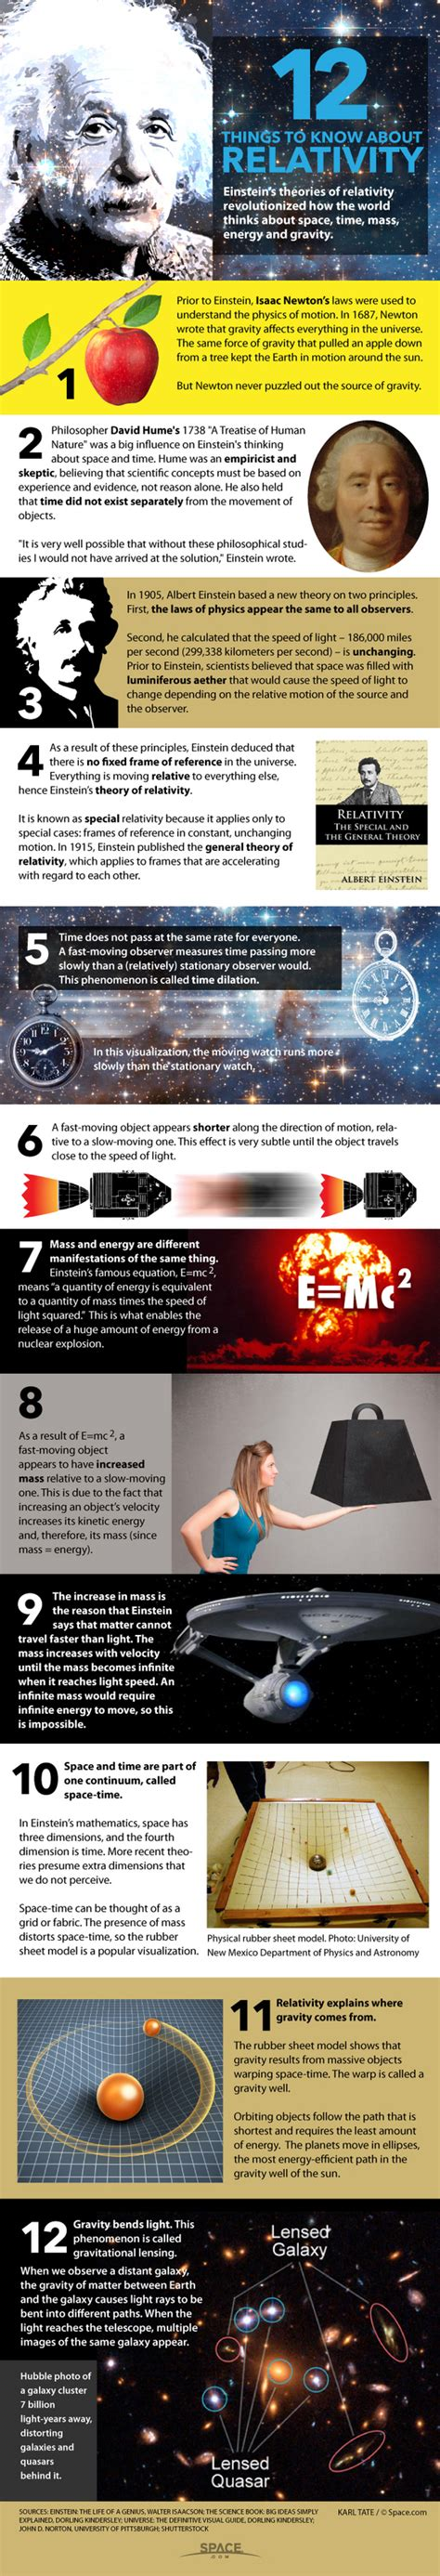 einstein s theories of relativity everyone s guide to special general relativity books einstein s theory of relativity explained infographic